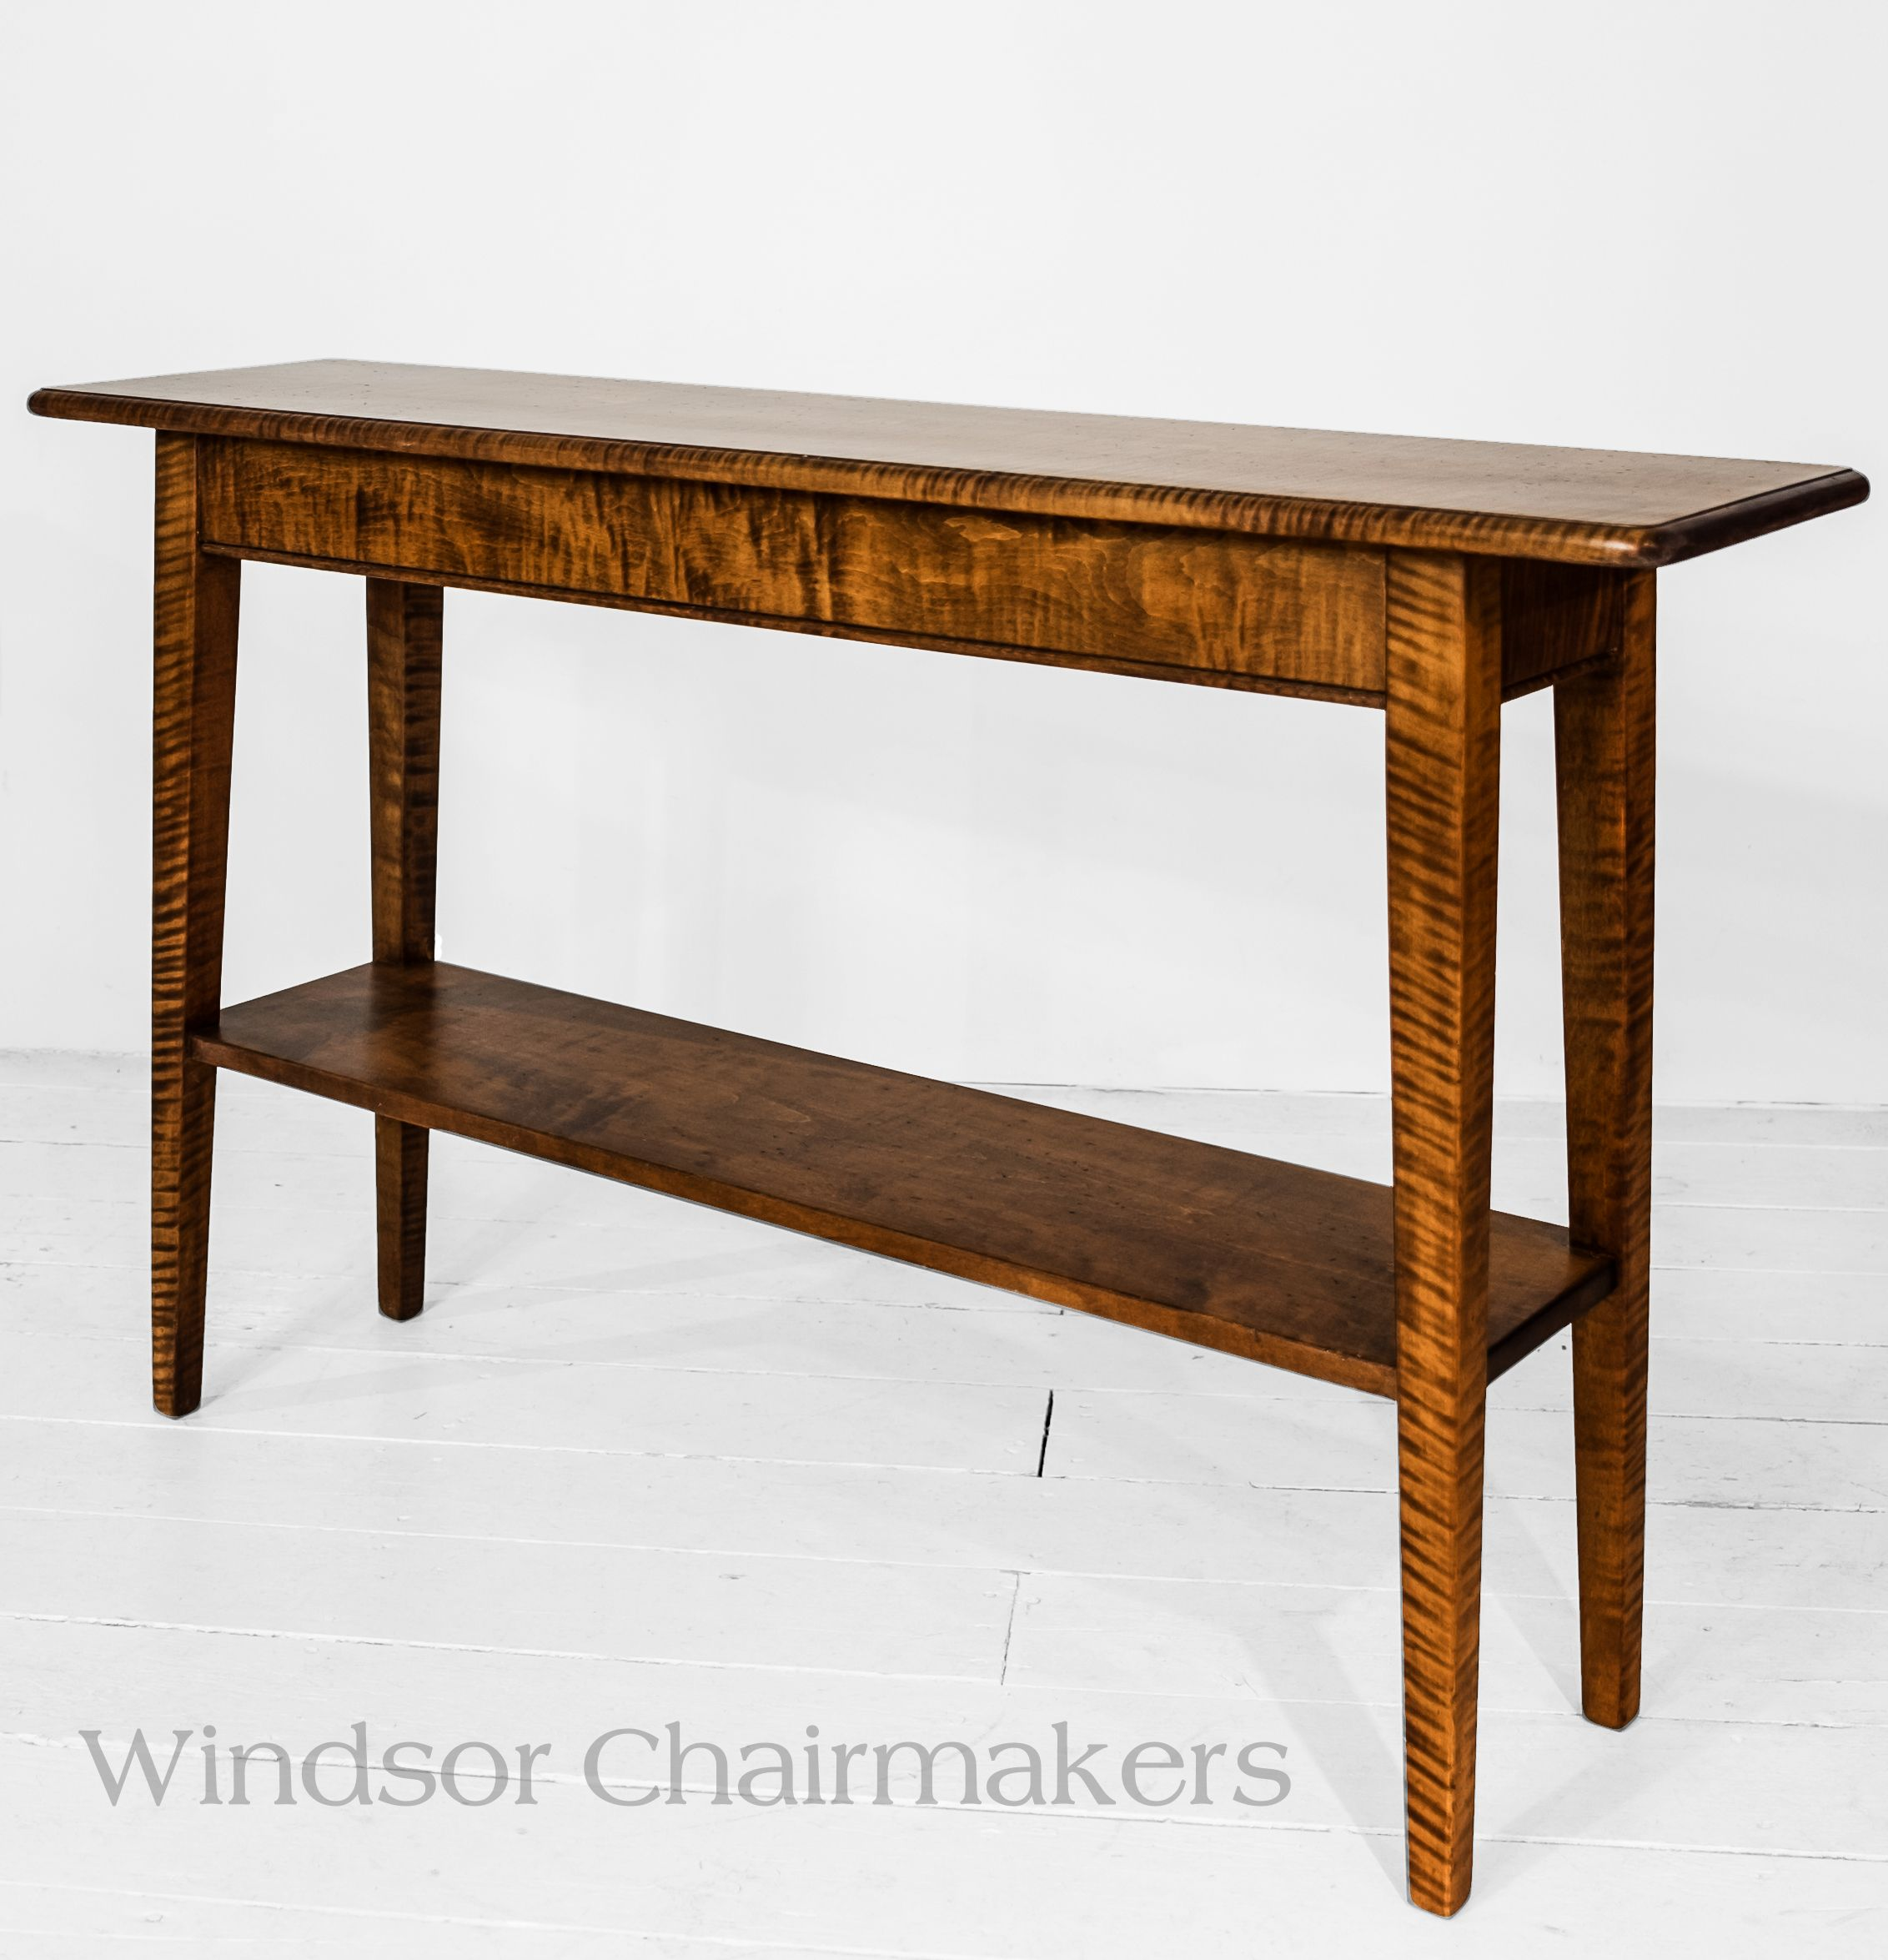 Charmant Console Table 48u201d X 12u201d X 28u201d High Wood Choices: Tiger Maple, Cherry Or  Walnut